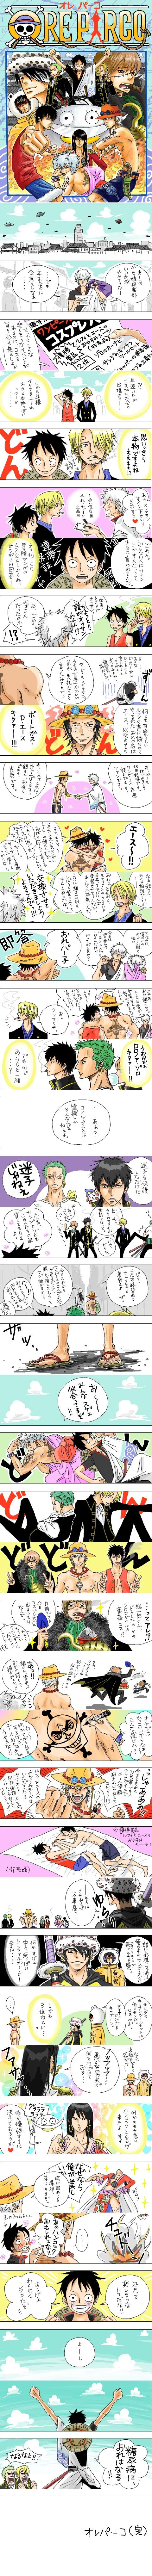 Can't really understand what are they talking about, but pinning this just for Katsura's cosplay as Hancock and blowing himself up xD